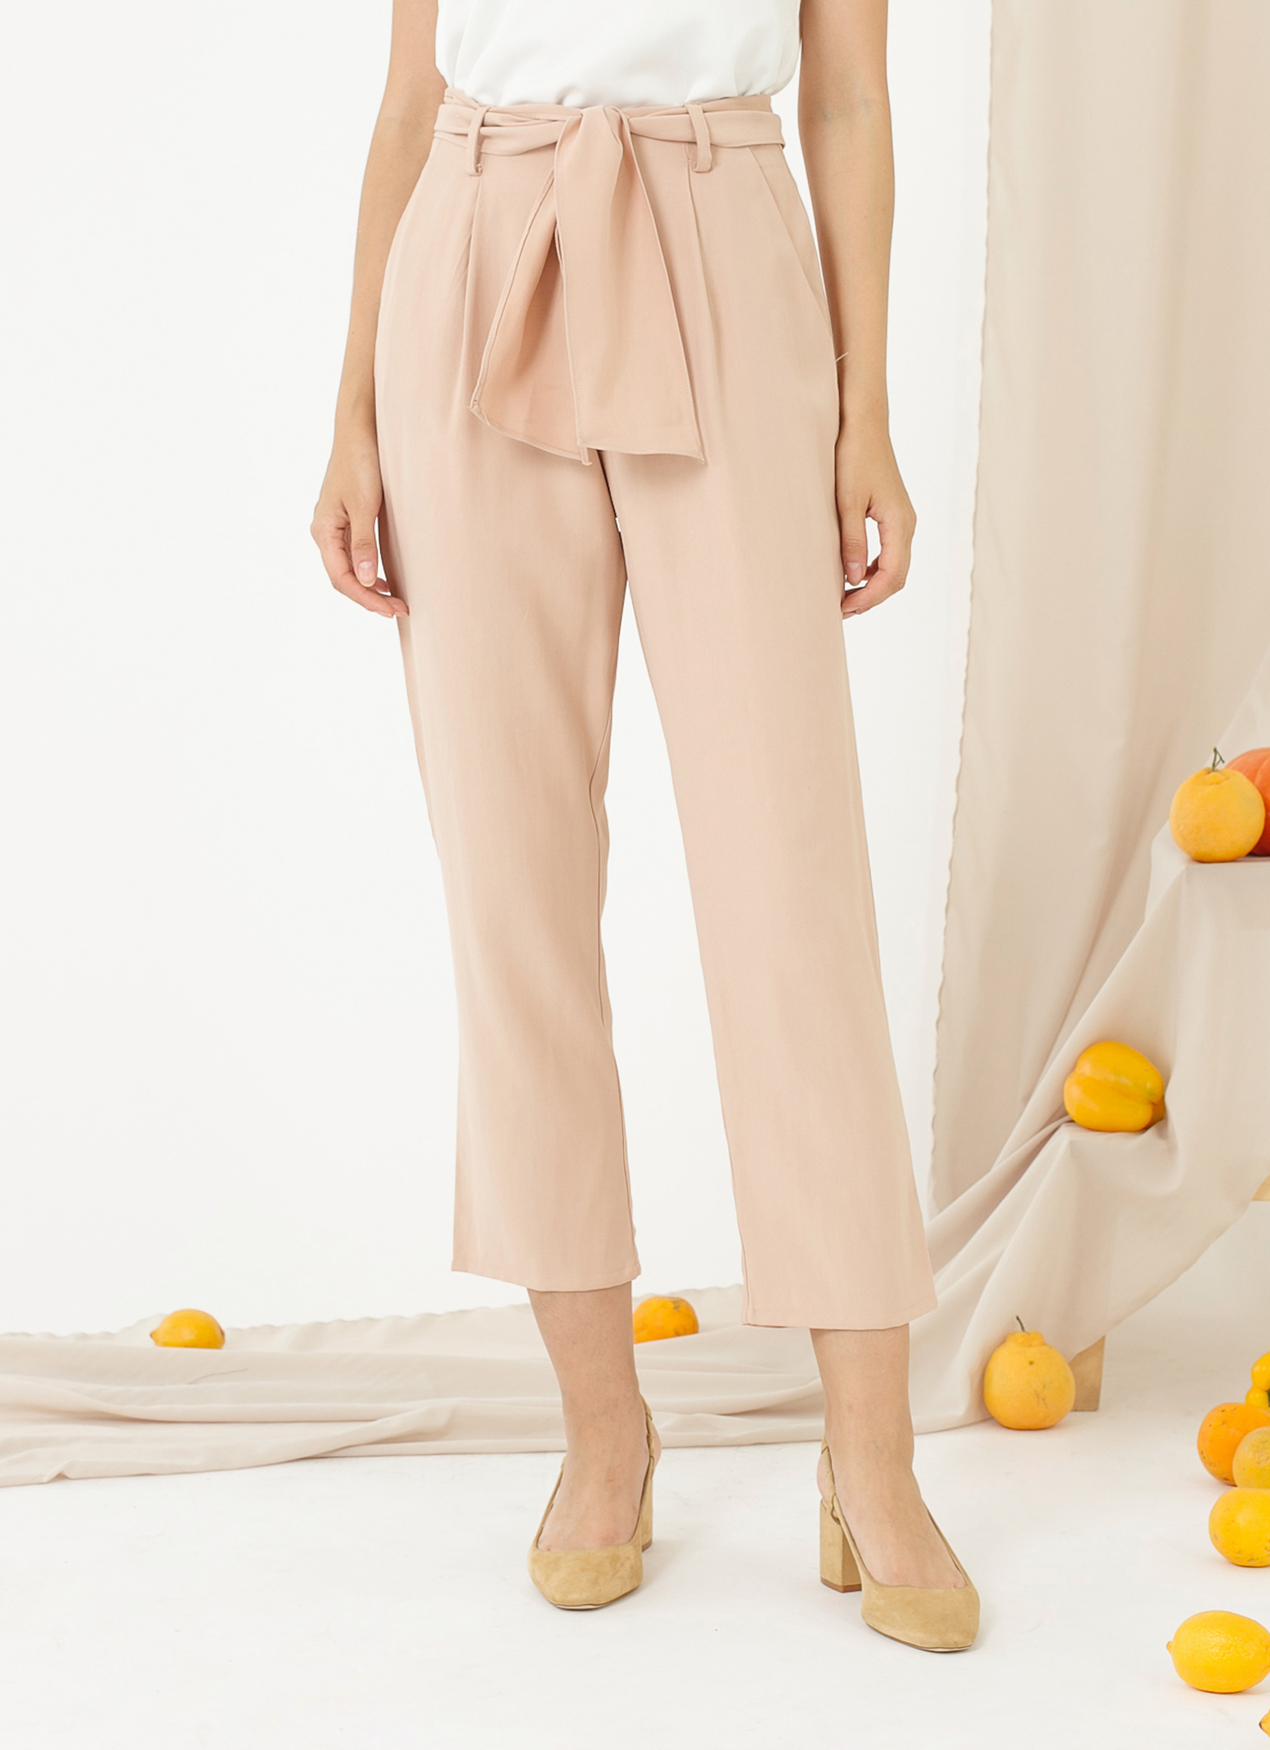 CLOTH INC Belted Piper Pants - Nude Pink